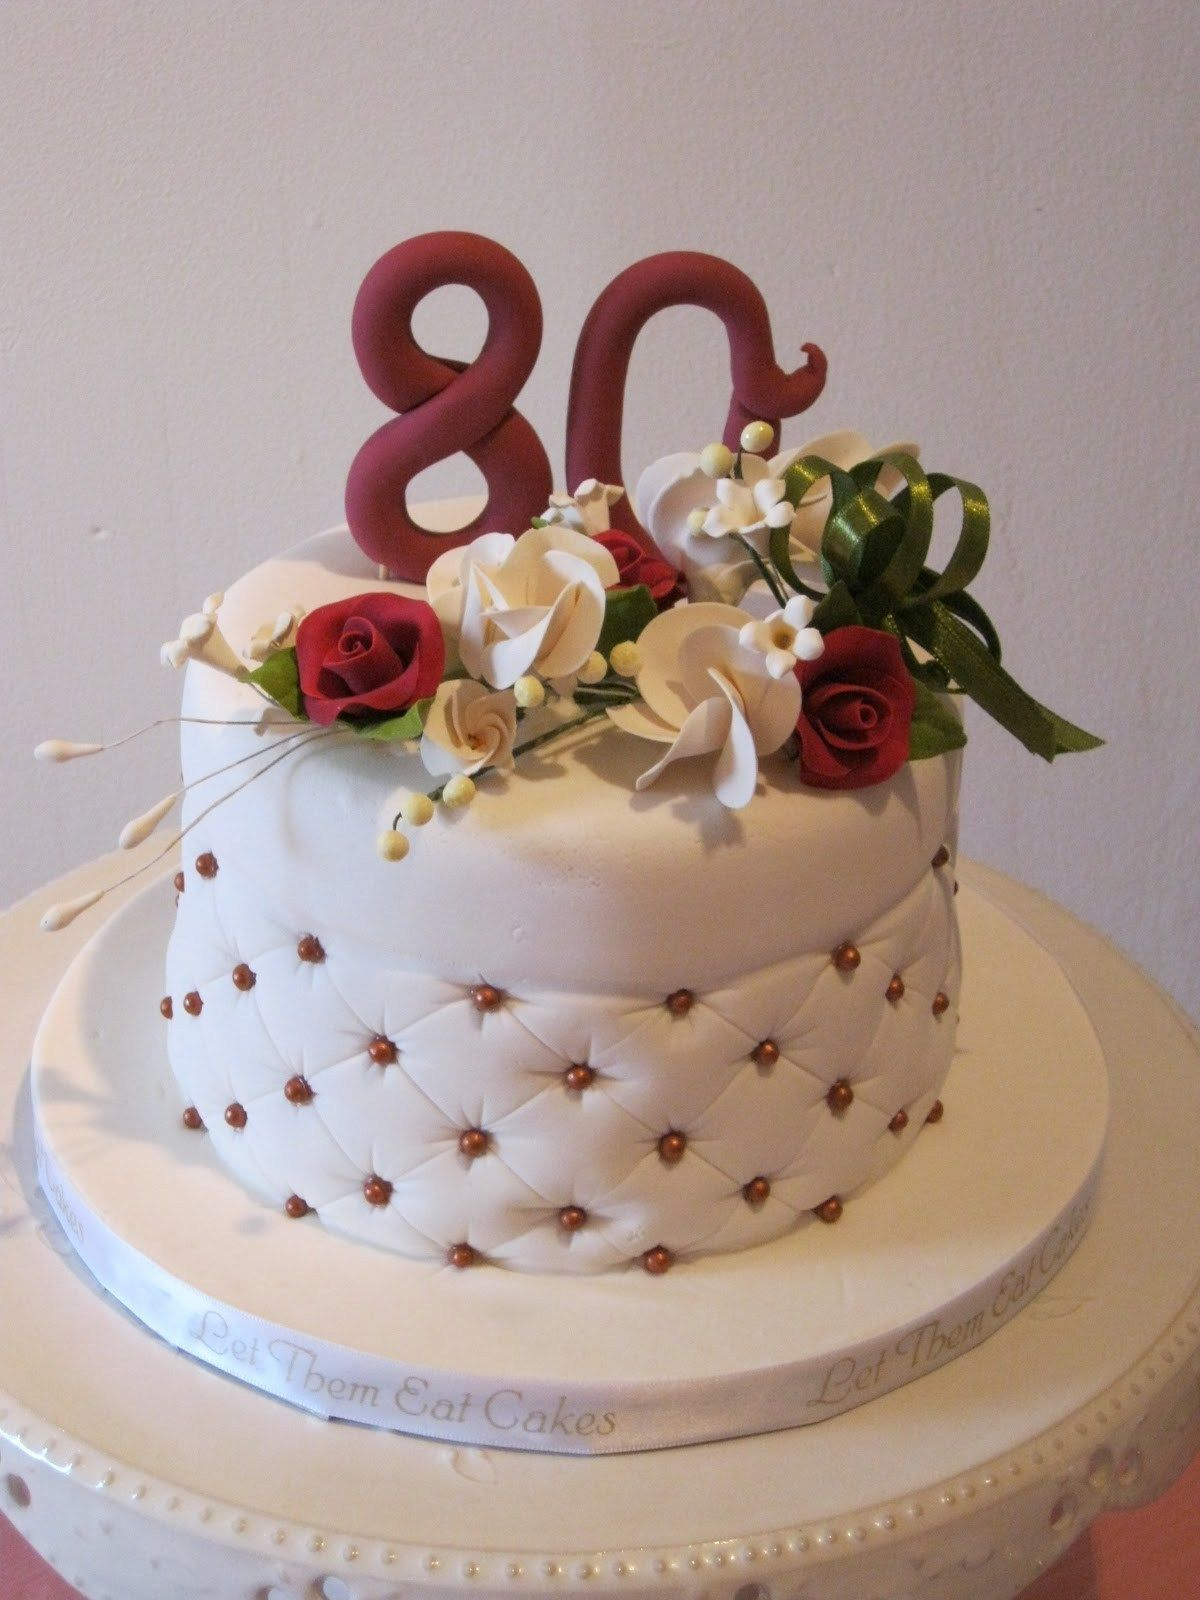 32 Elegant Picture Of 80th Birthday Cake Ideas With Images Birthday Cakes For Men 80 Birthday Cake 80th Birthday Cake For Men